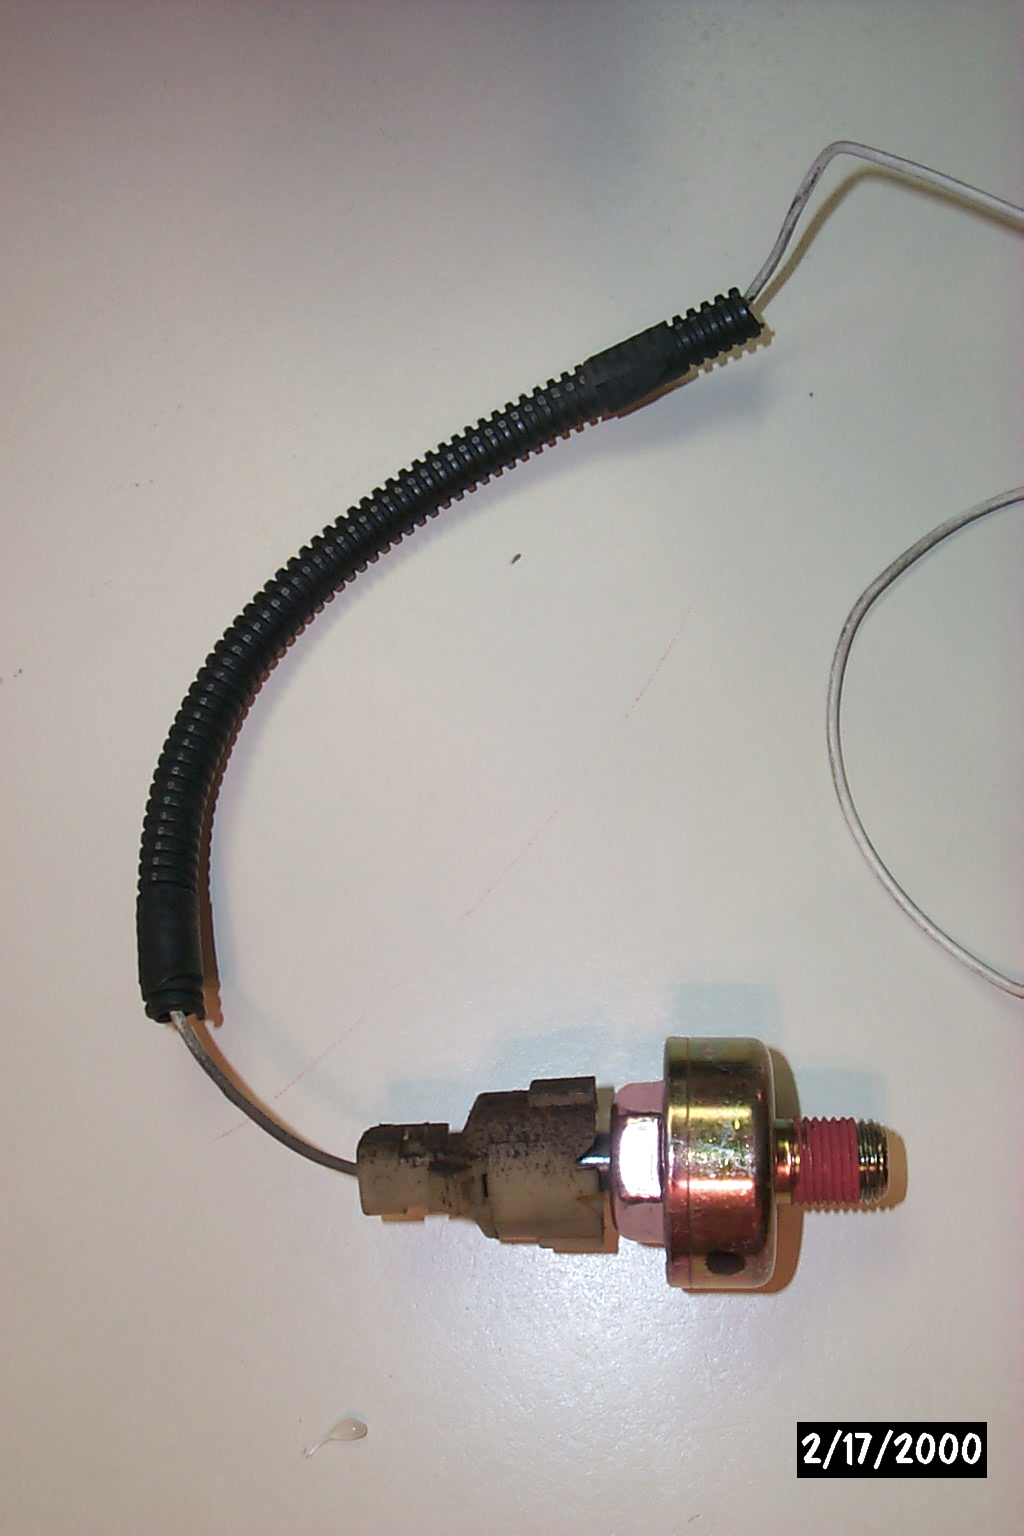 Knock Sensor w/ junkyard harness conn.